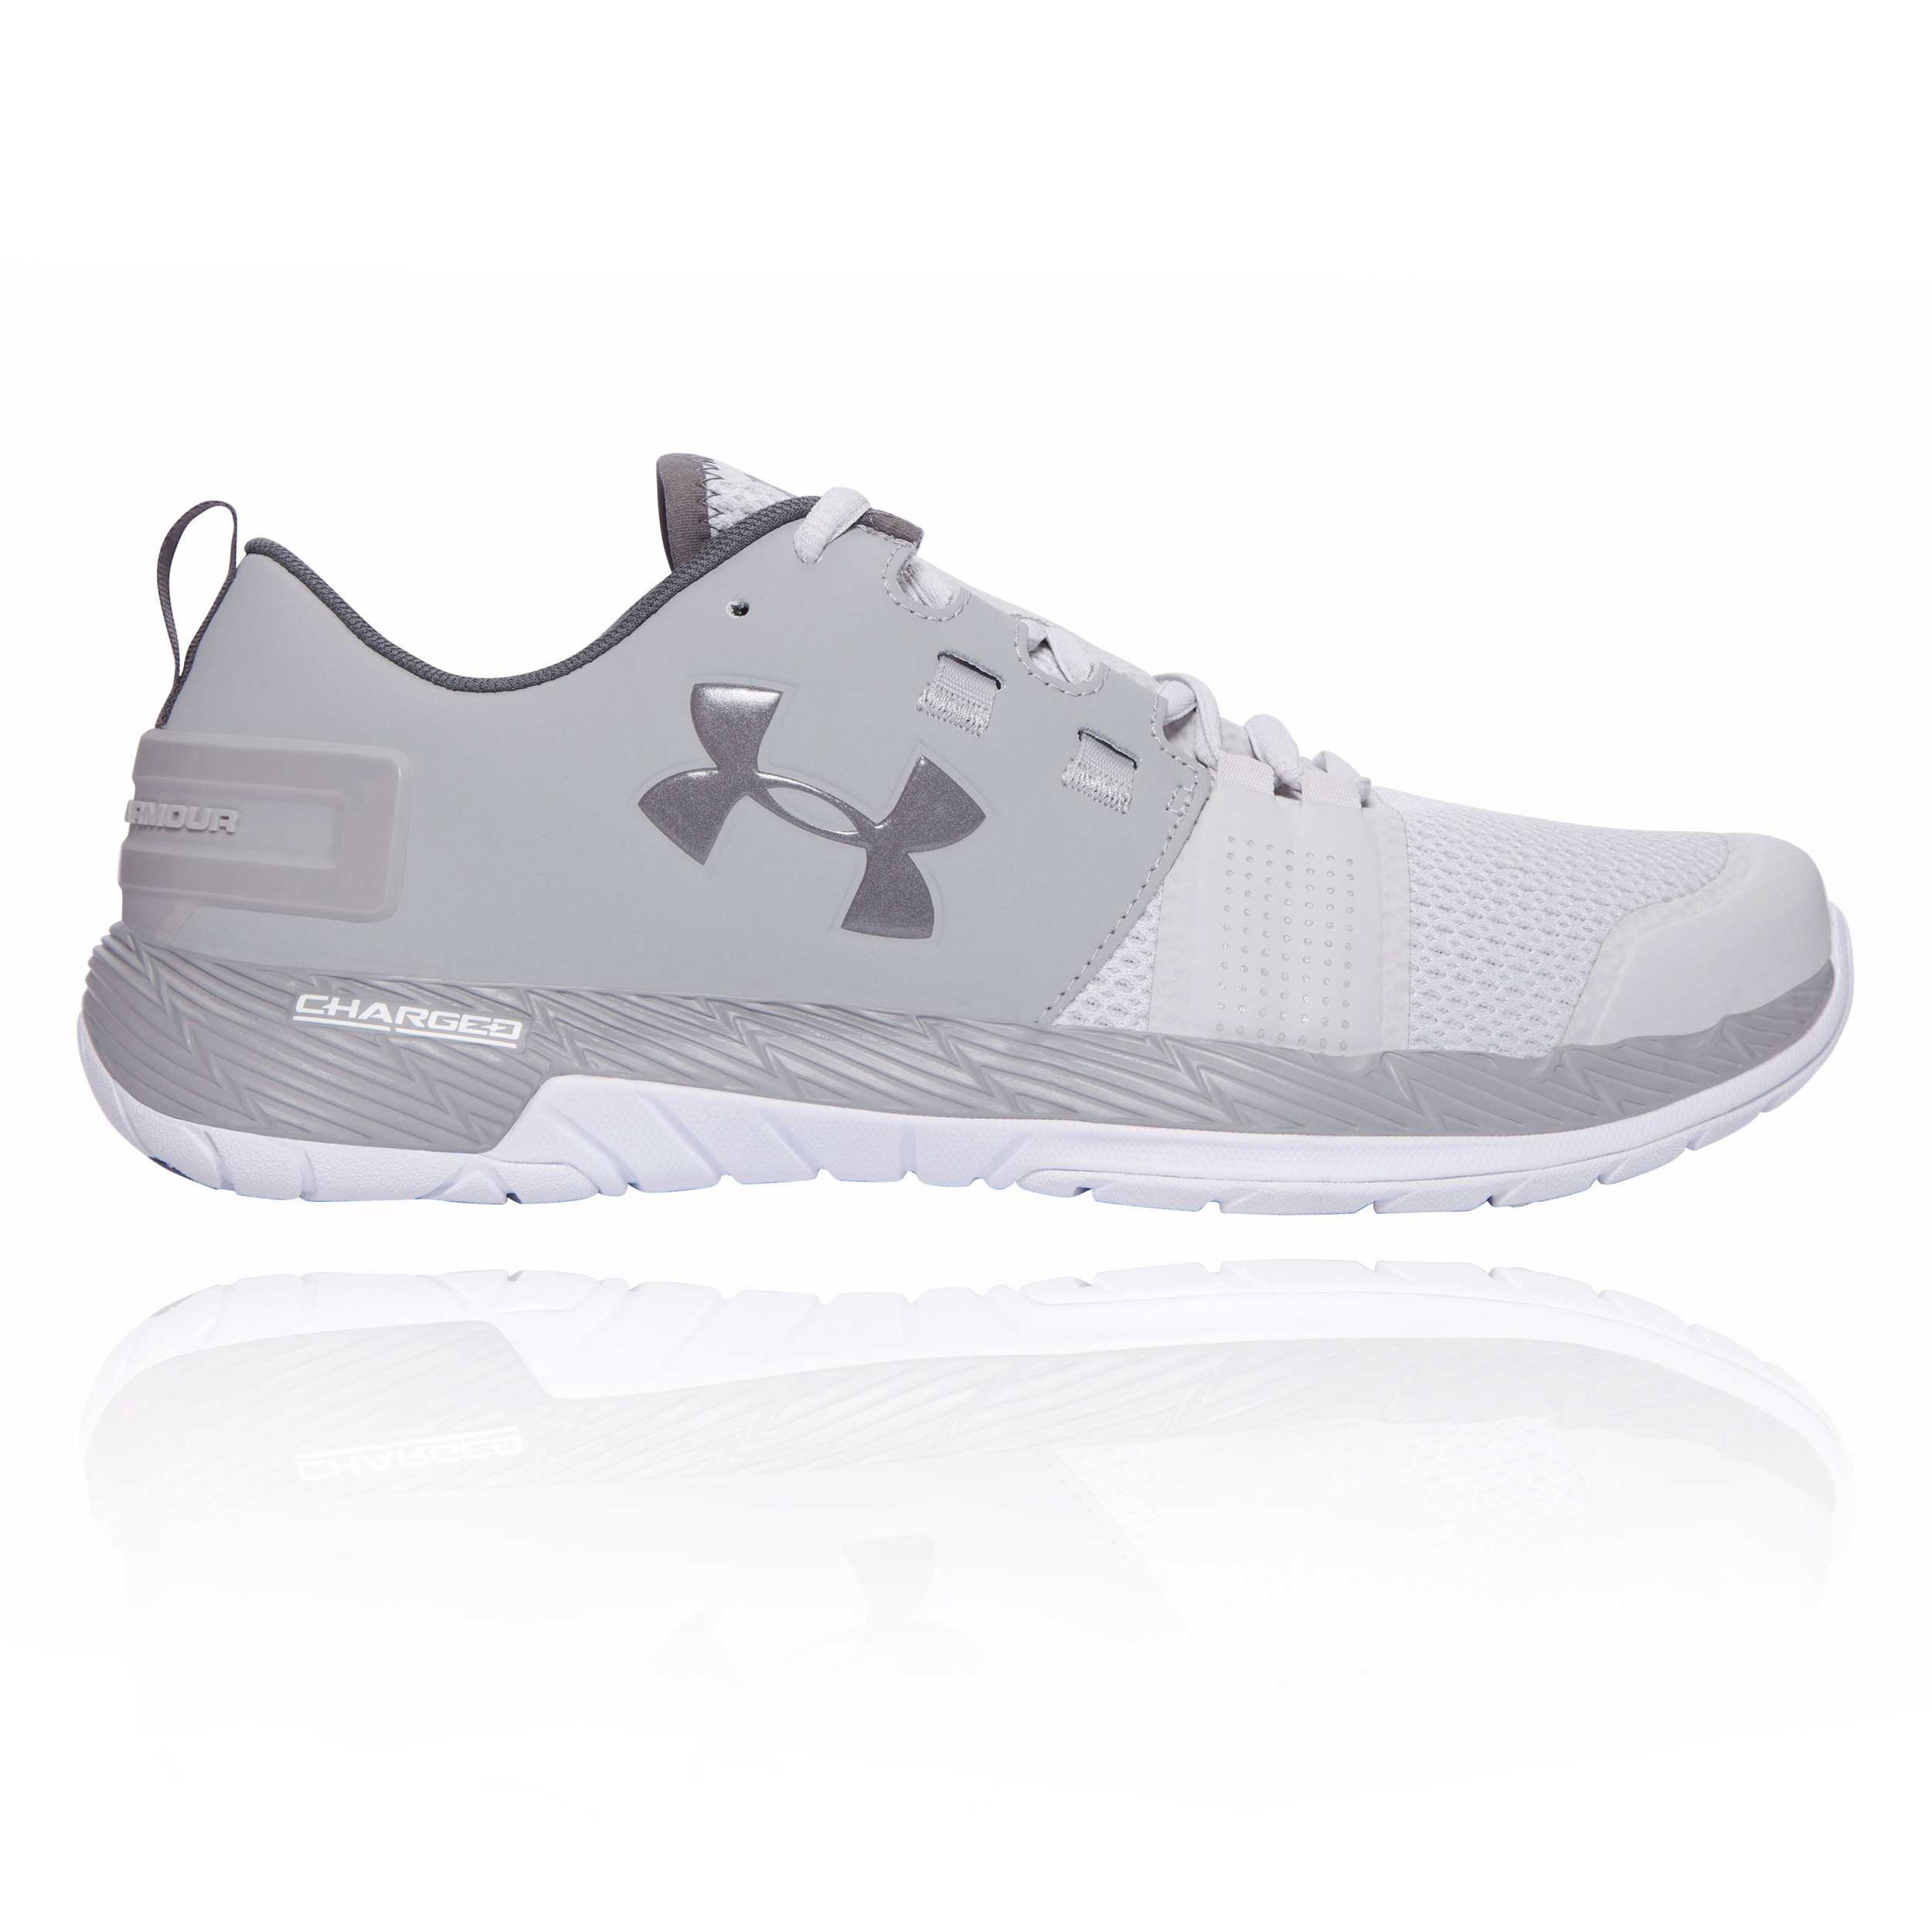 8a0a6c21e4 Details about Under Armour Mens Commit Training Gym Fitness Shoes Grey  Breathable Trainers